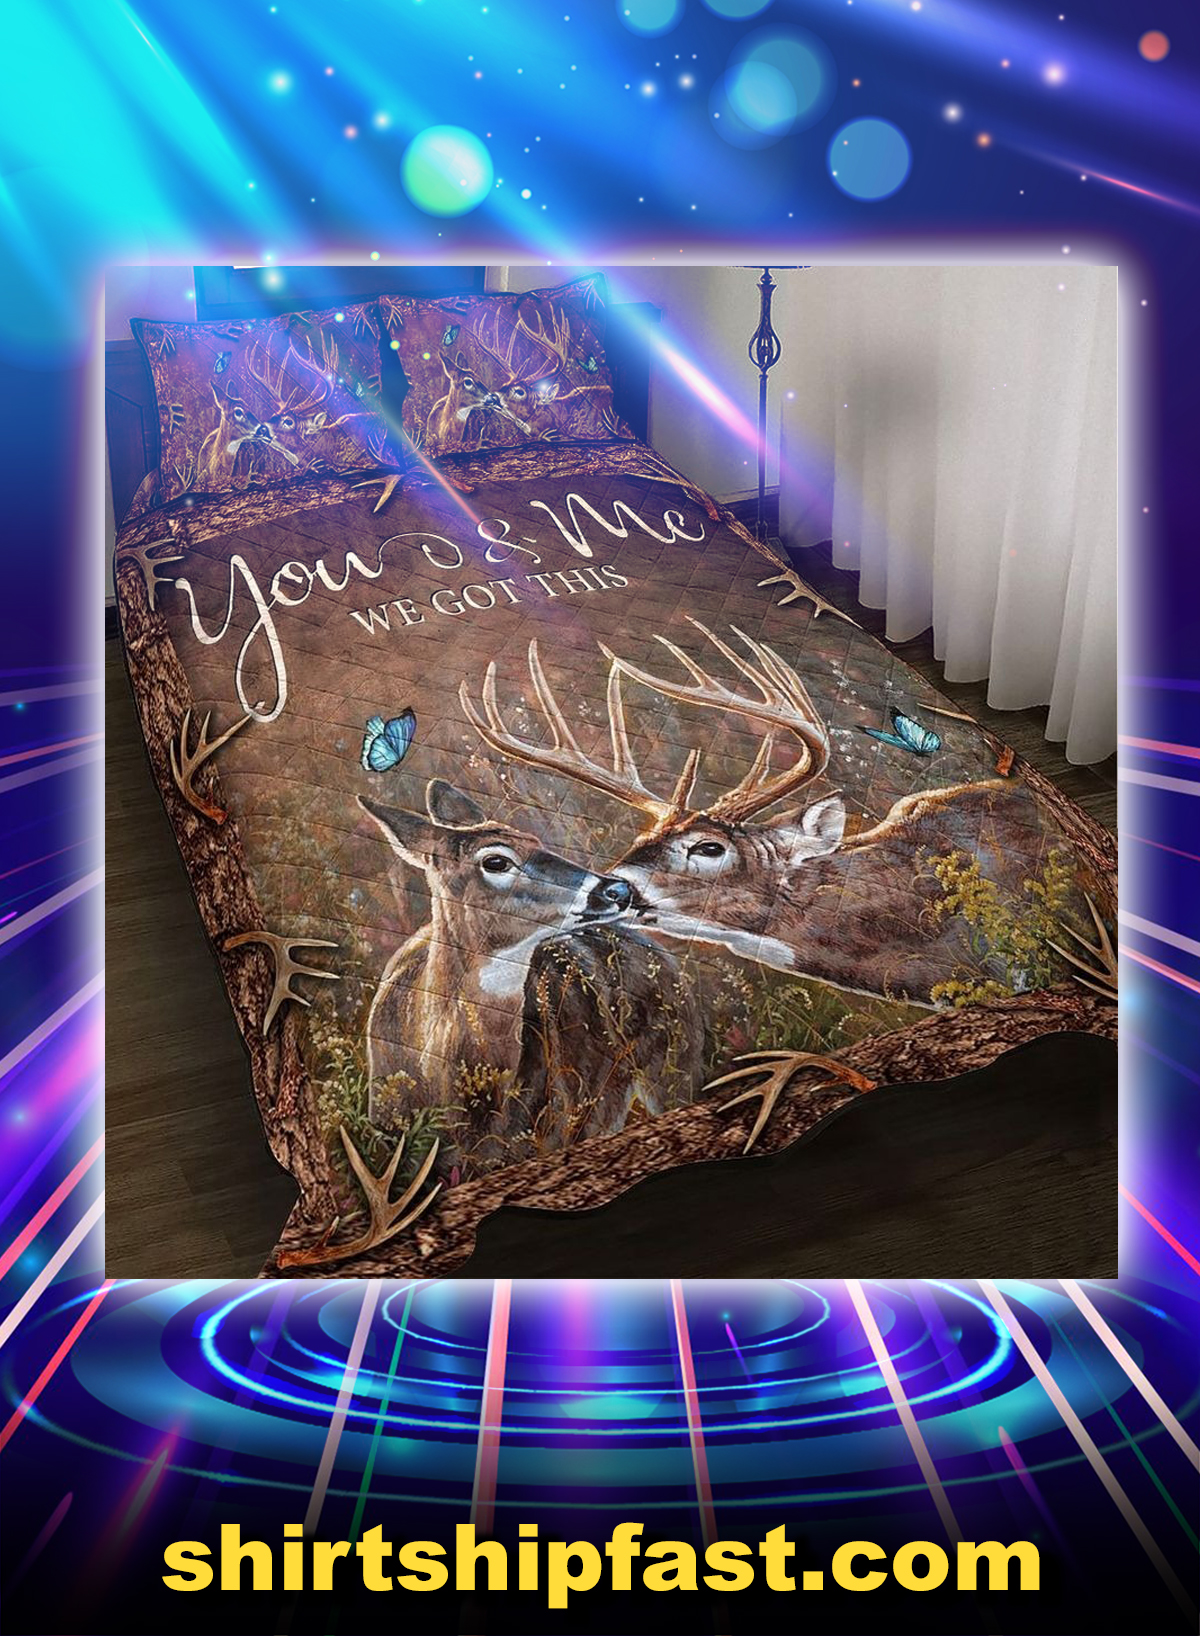 Deer hunting you and me we got this bed set